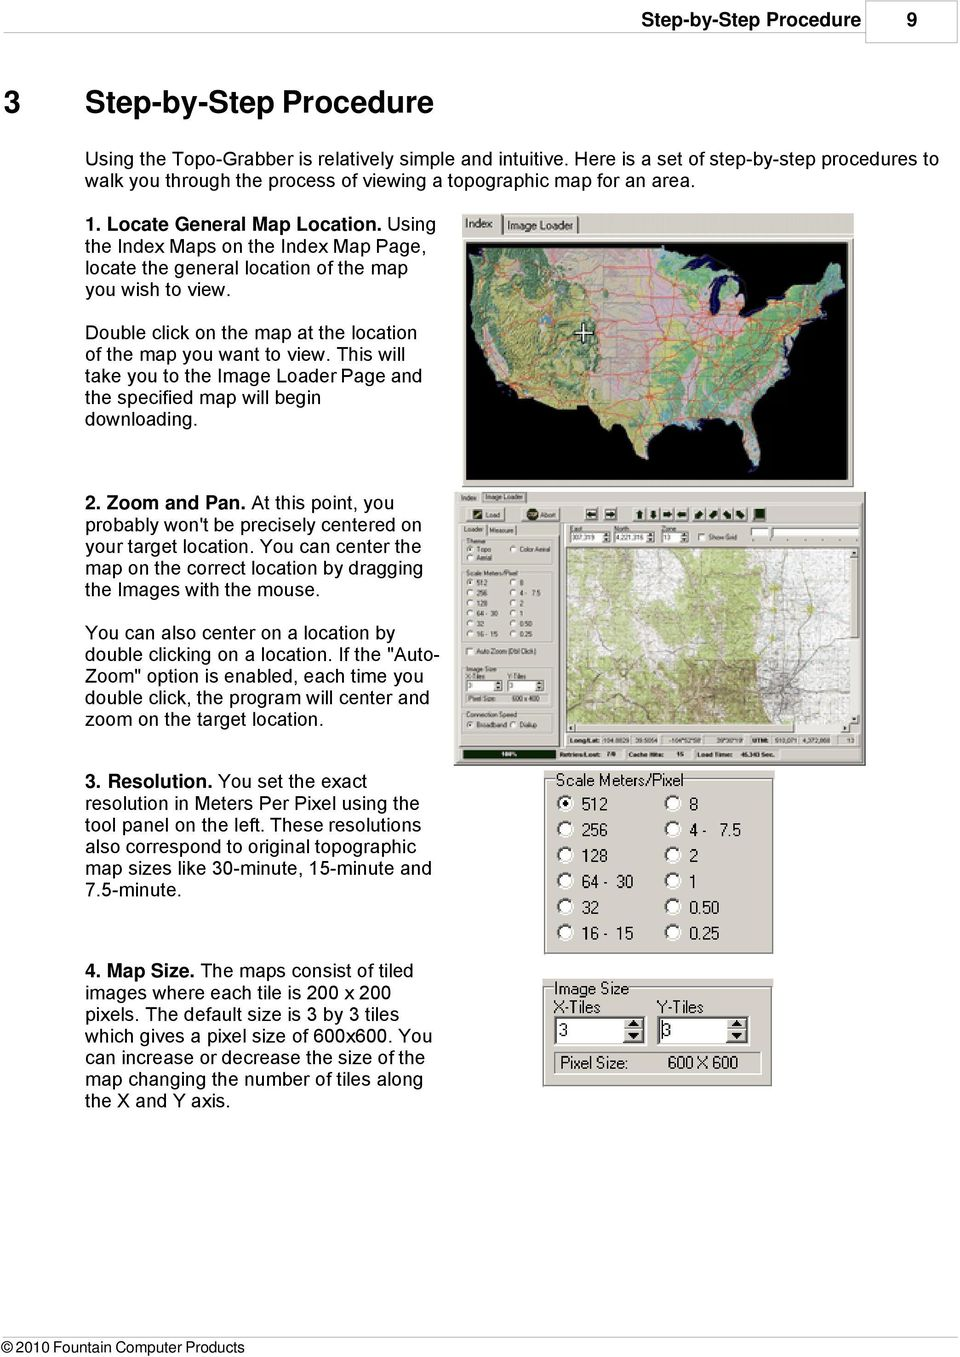 Using the Index Maps on the Index Map Page, locate the general location of the map you wish to view. Double click on the map at the location of the map you want to view.